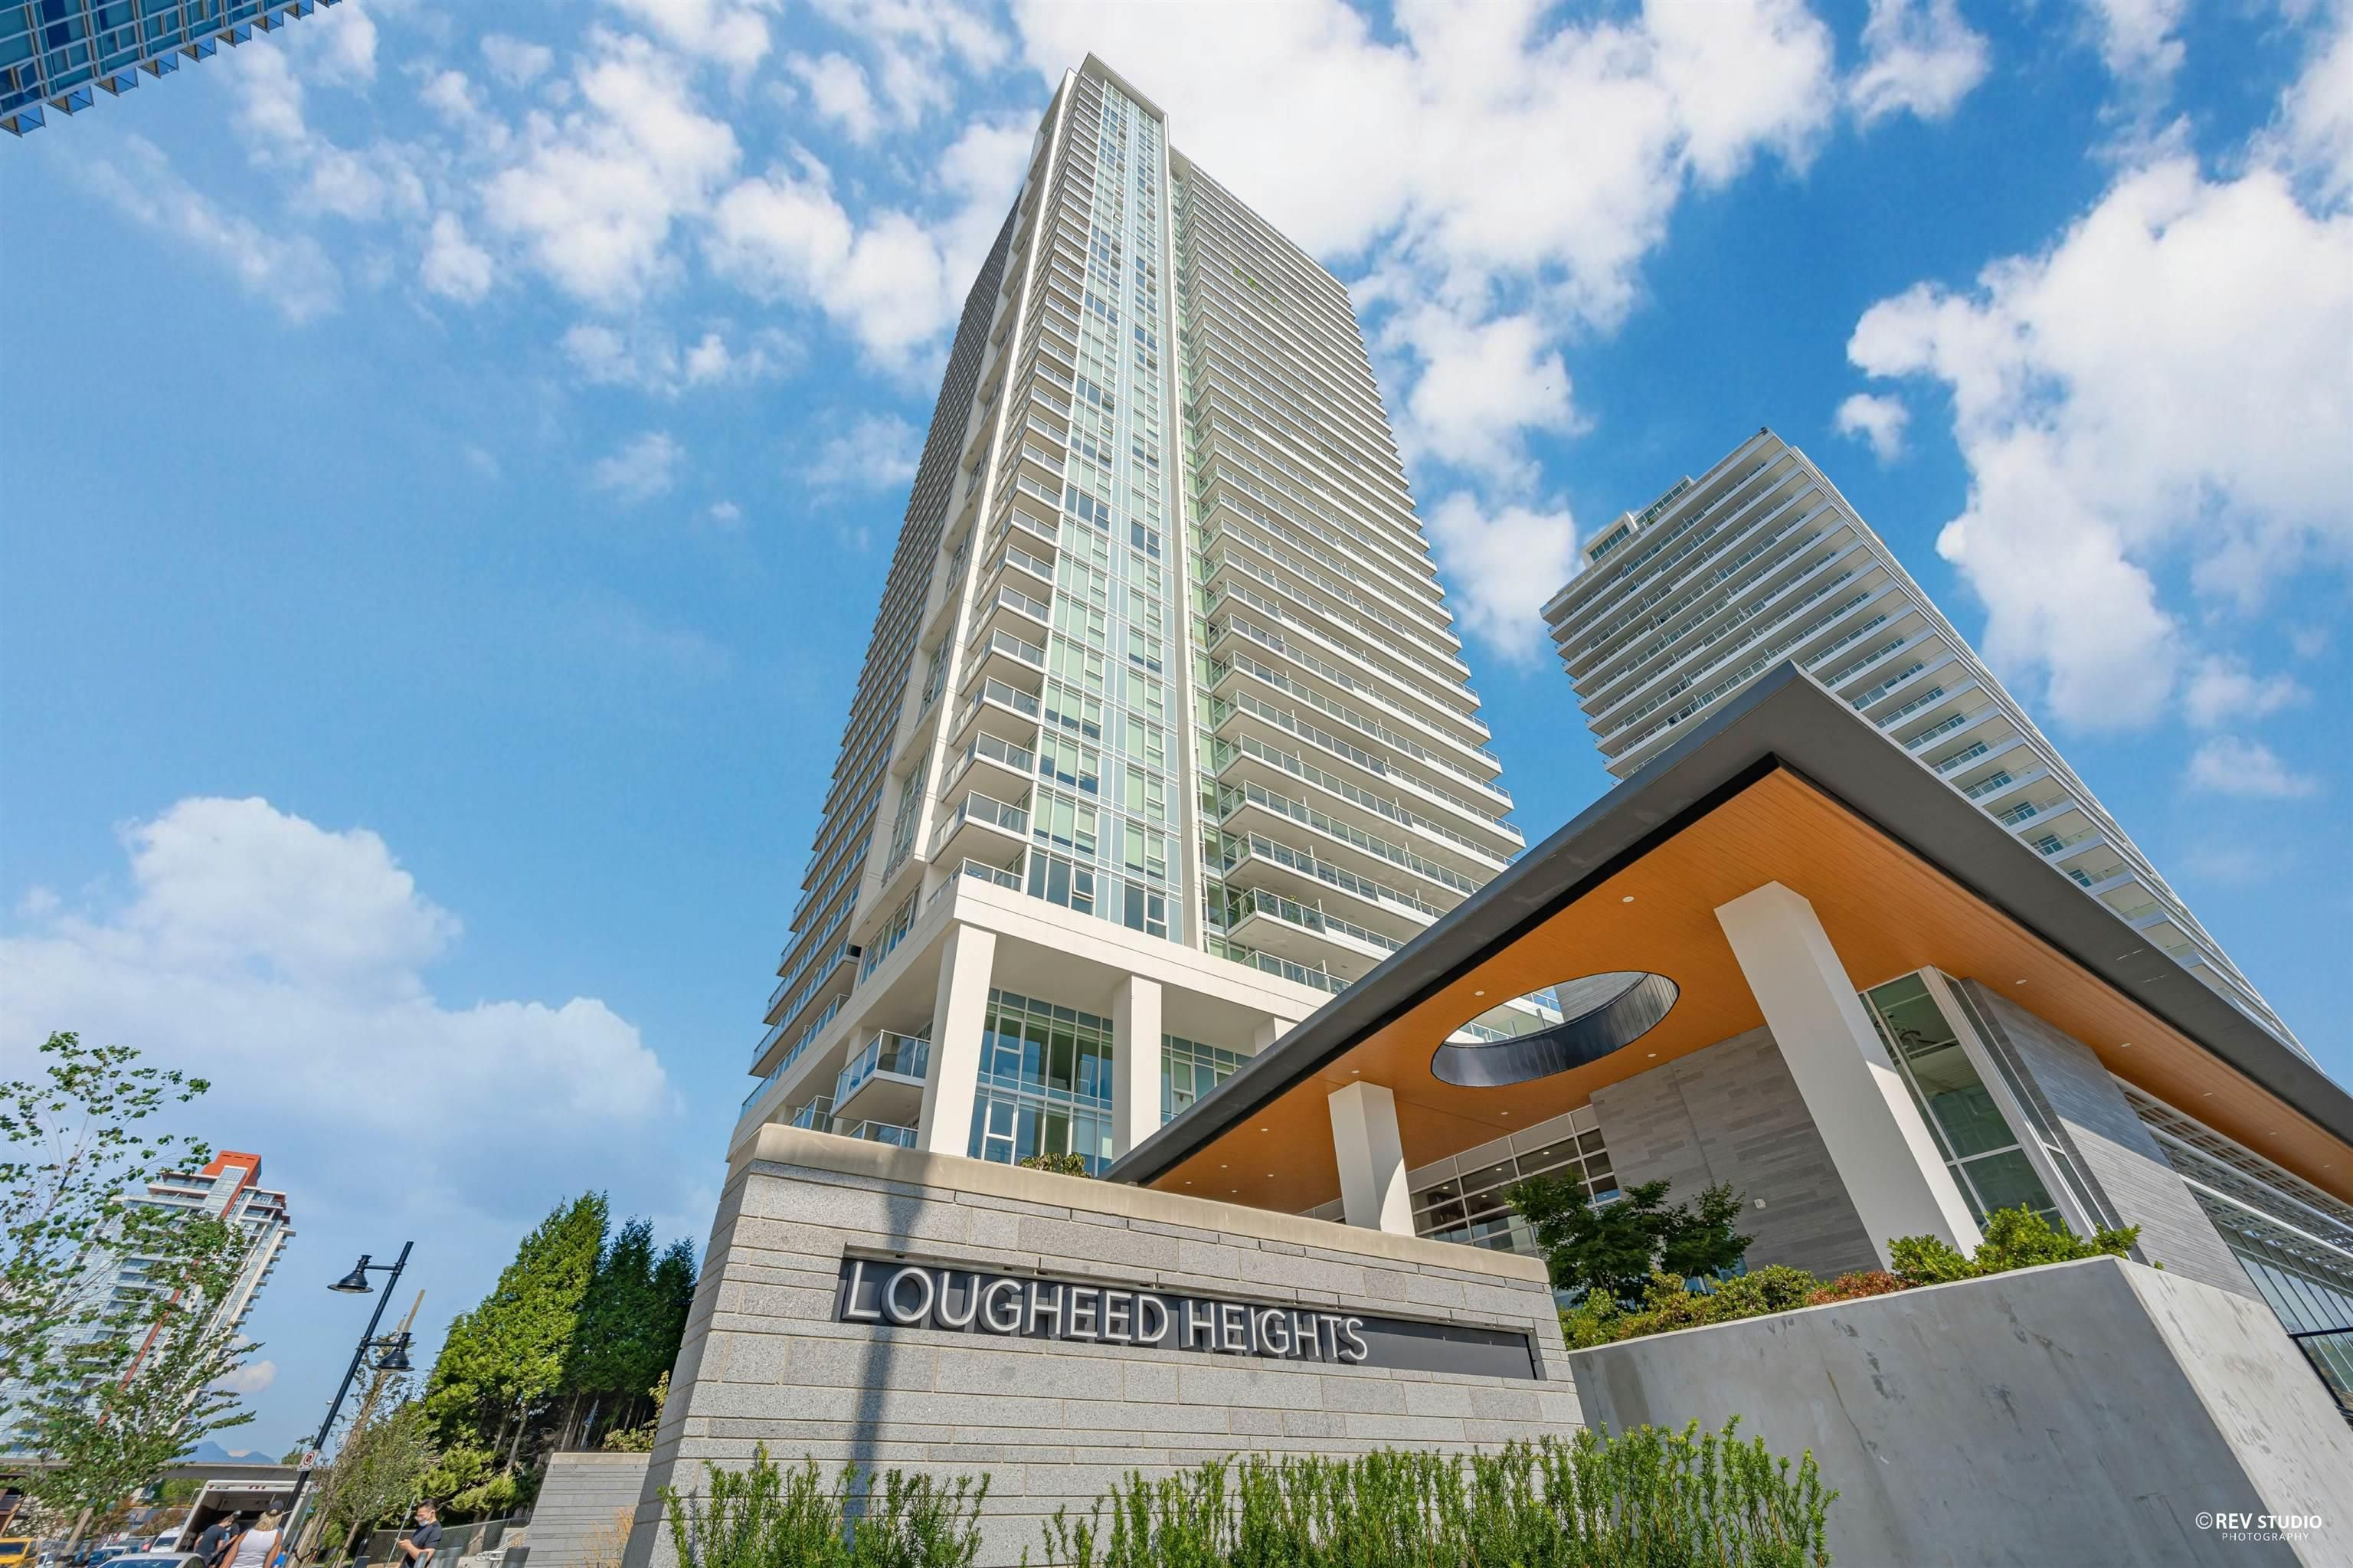 """Main Photo: 1810 525 FOSTER Avenue in Coquitlam: Coquitlam West Condo for sale in """"LOUGHEED HEIGHTS 2"""" : MLS®# R2621298"""